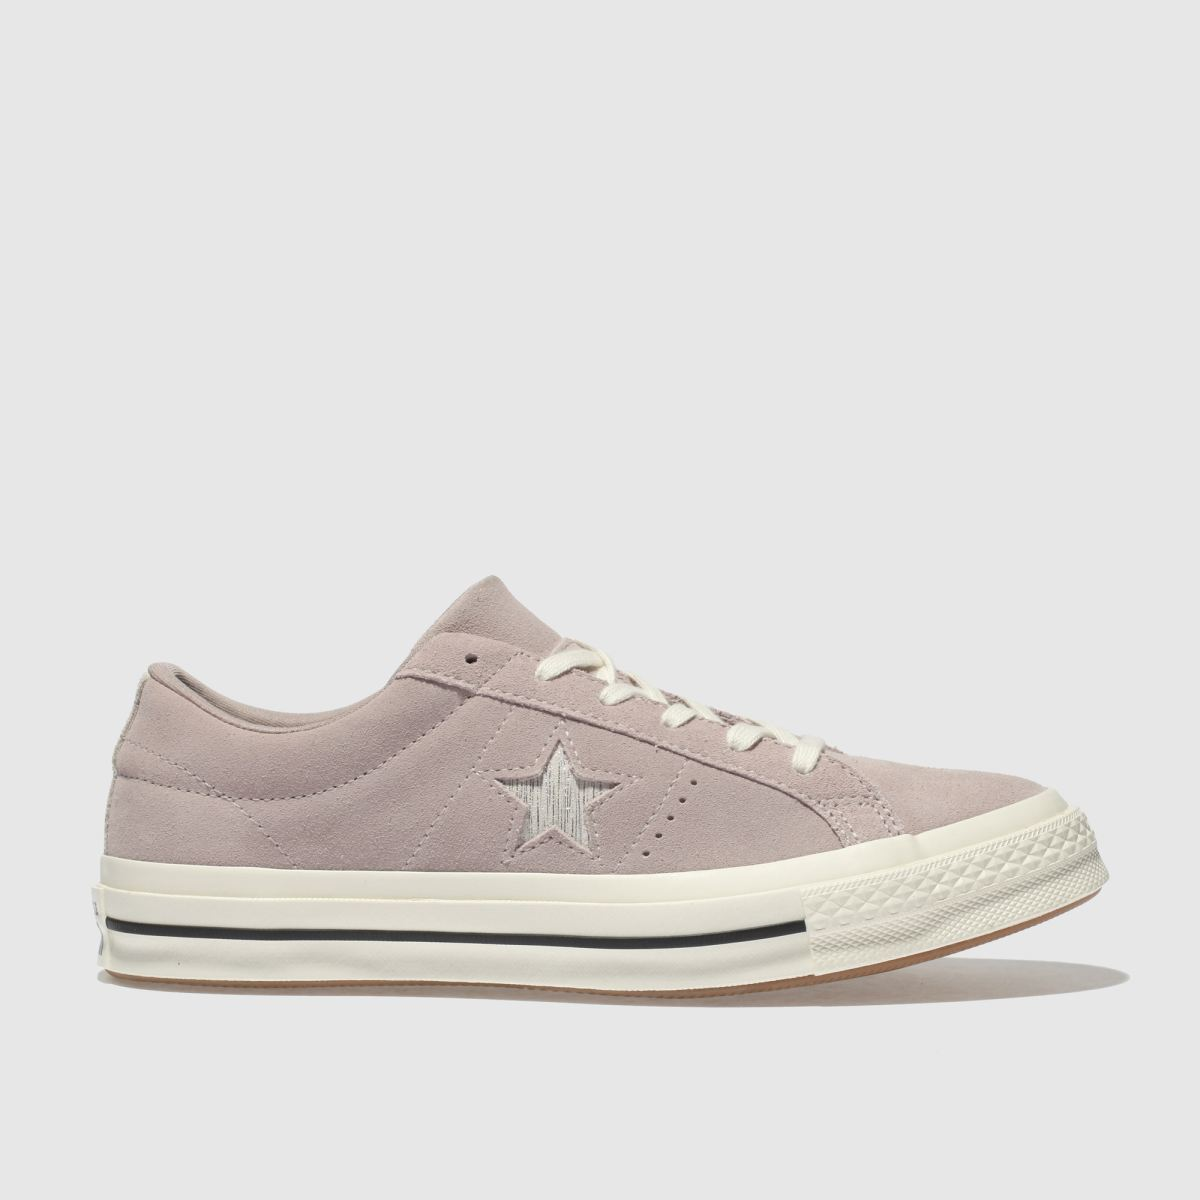 Converse Pale Pink One Star Ox Suede Trainers